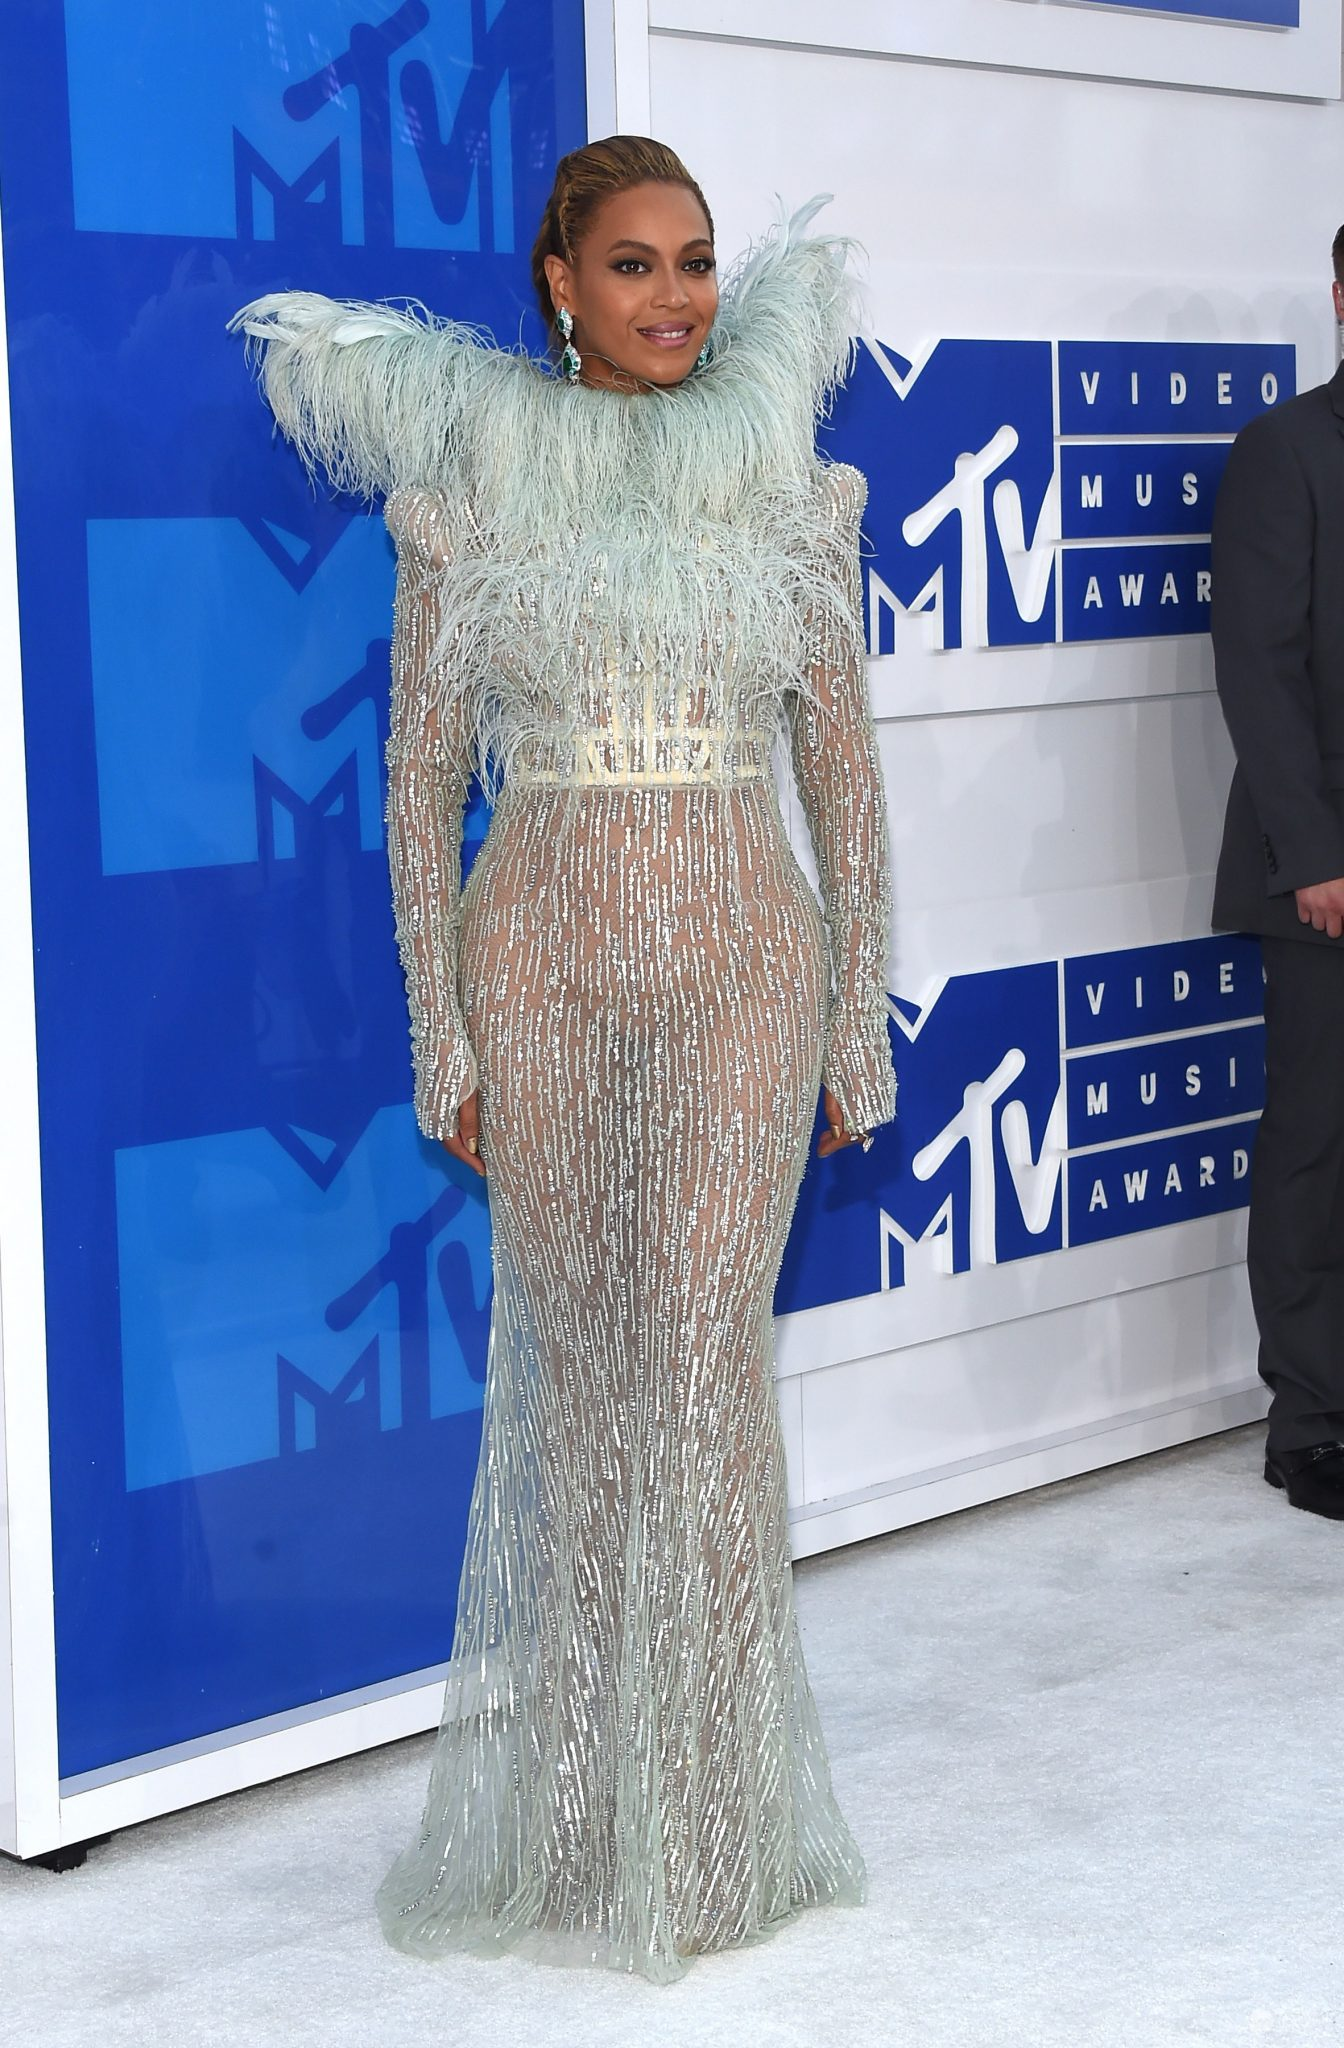 August 28, 2016 New York City, NY Beyonce Knowles MTV Video Music Awards 2016 held at Madison Square Gardens ©OConnor-Arroyo/AFF-USA.com